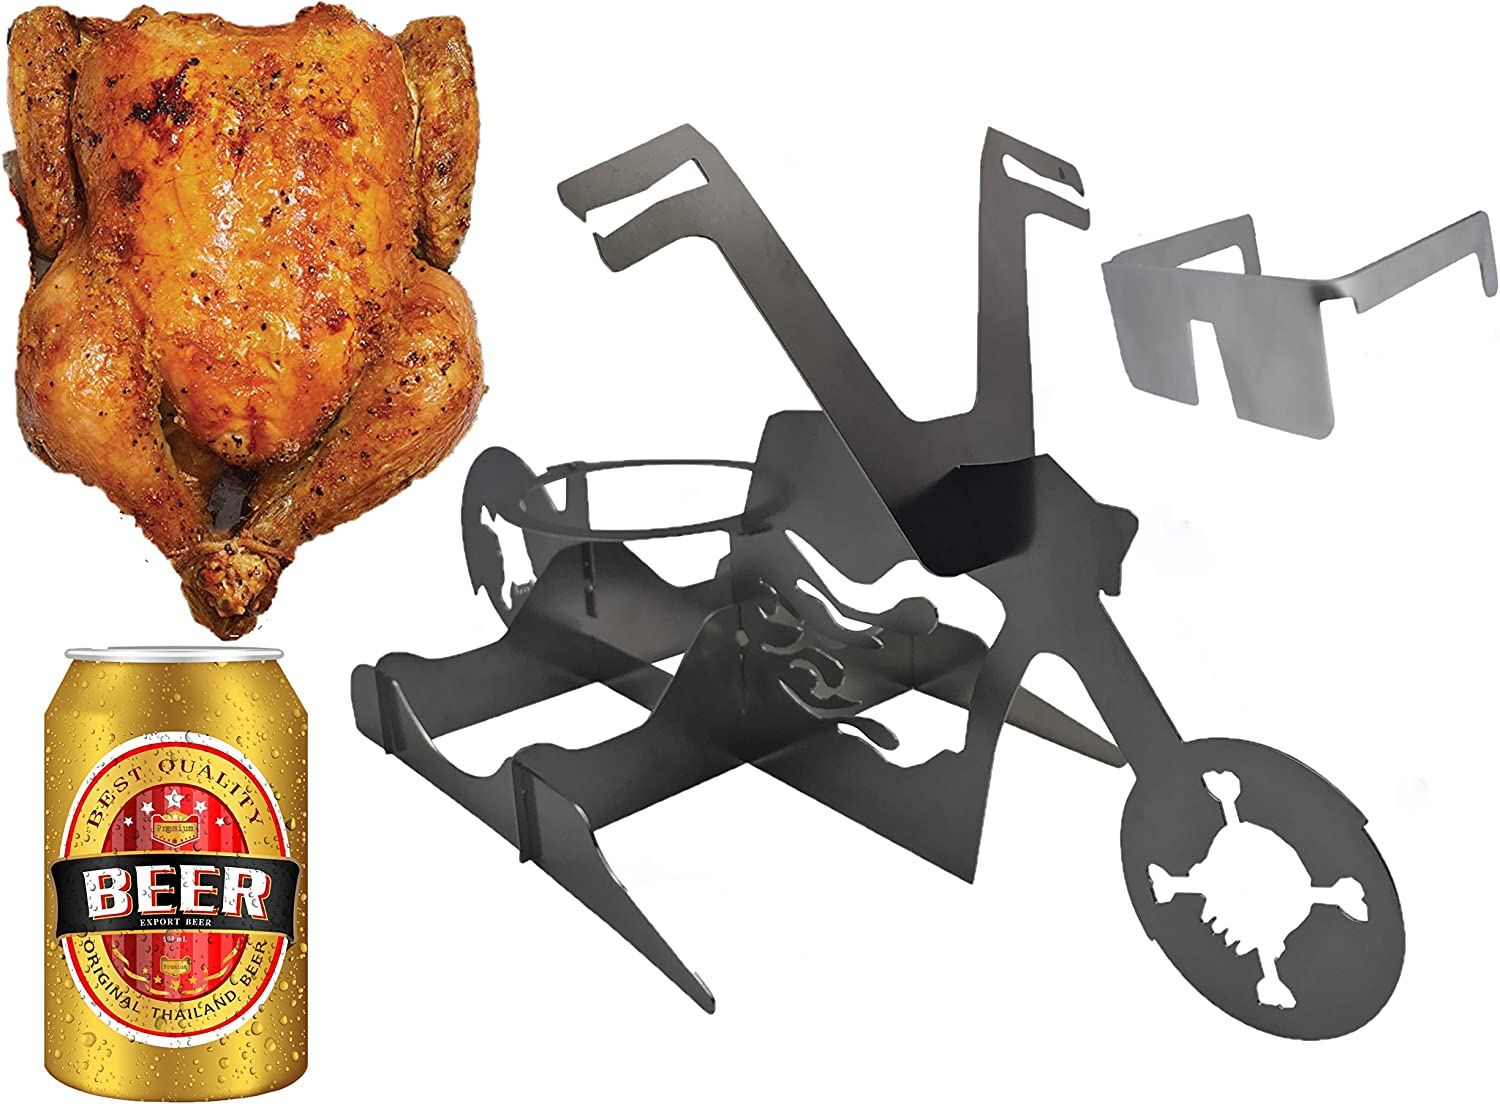 Flaming Bike Beer Can Chicken Stand! Beer chicken roaster; Stainless steel Chicken roasting rack for BBQ, Grill, oven; Great Gift! Stores flat--Space Saver! Includes FREE SUNGLASSES…for the Chicken!